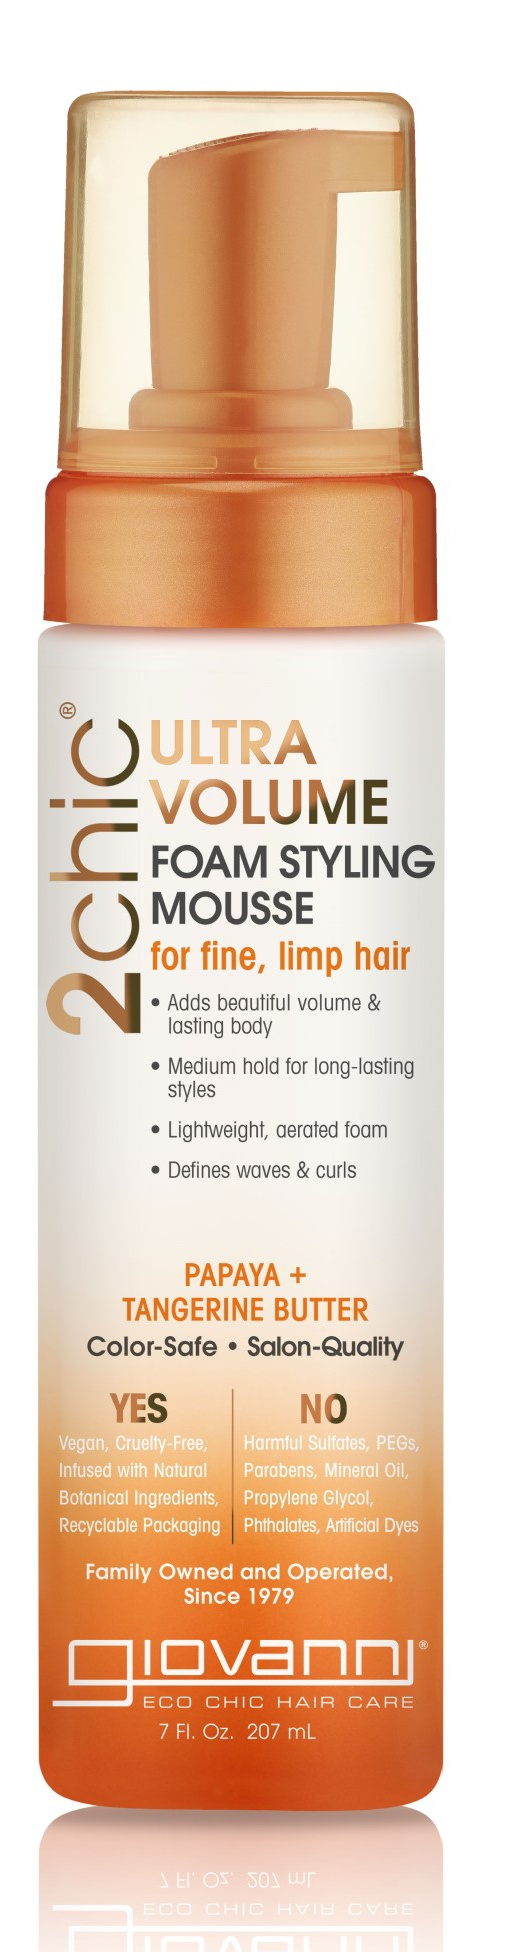 Giovanni Ultra Volume Foam Styling Mousse